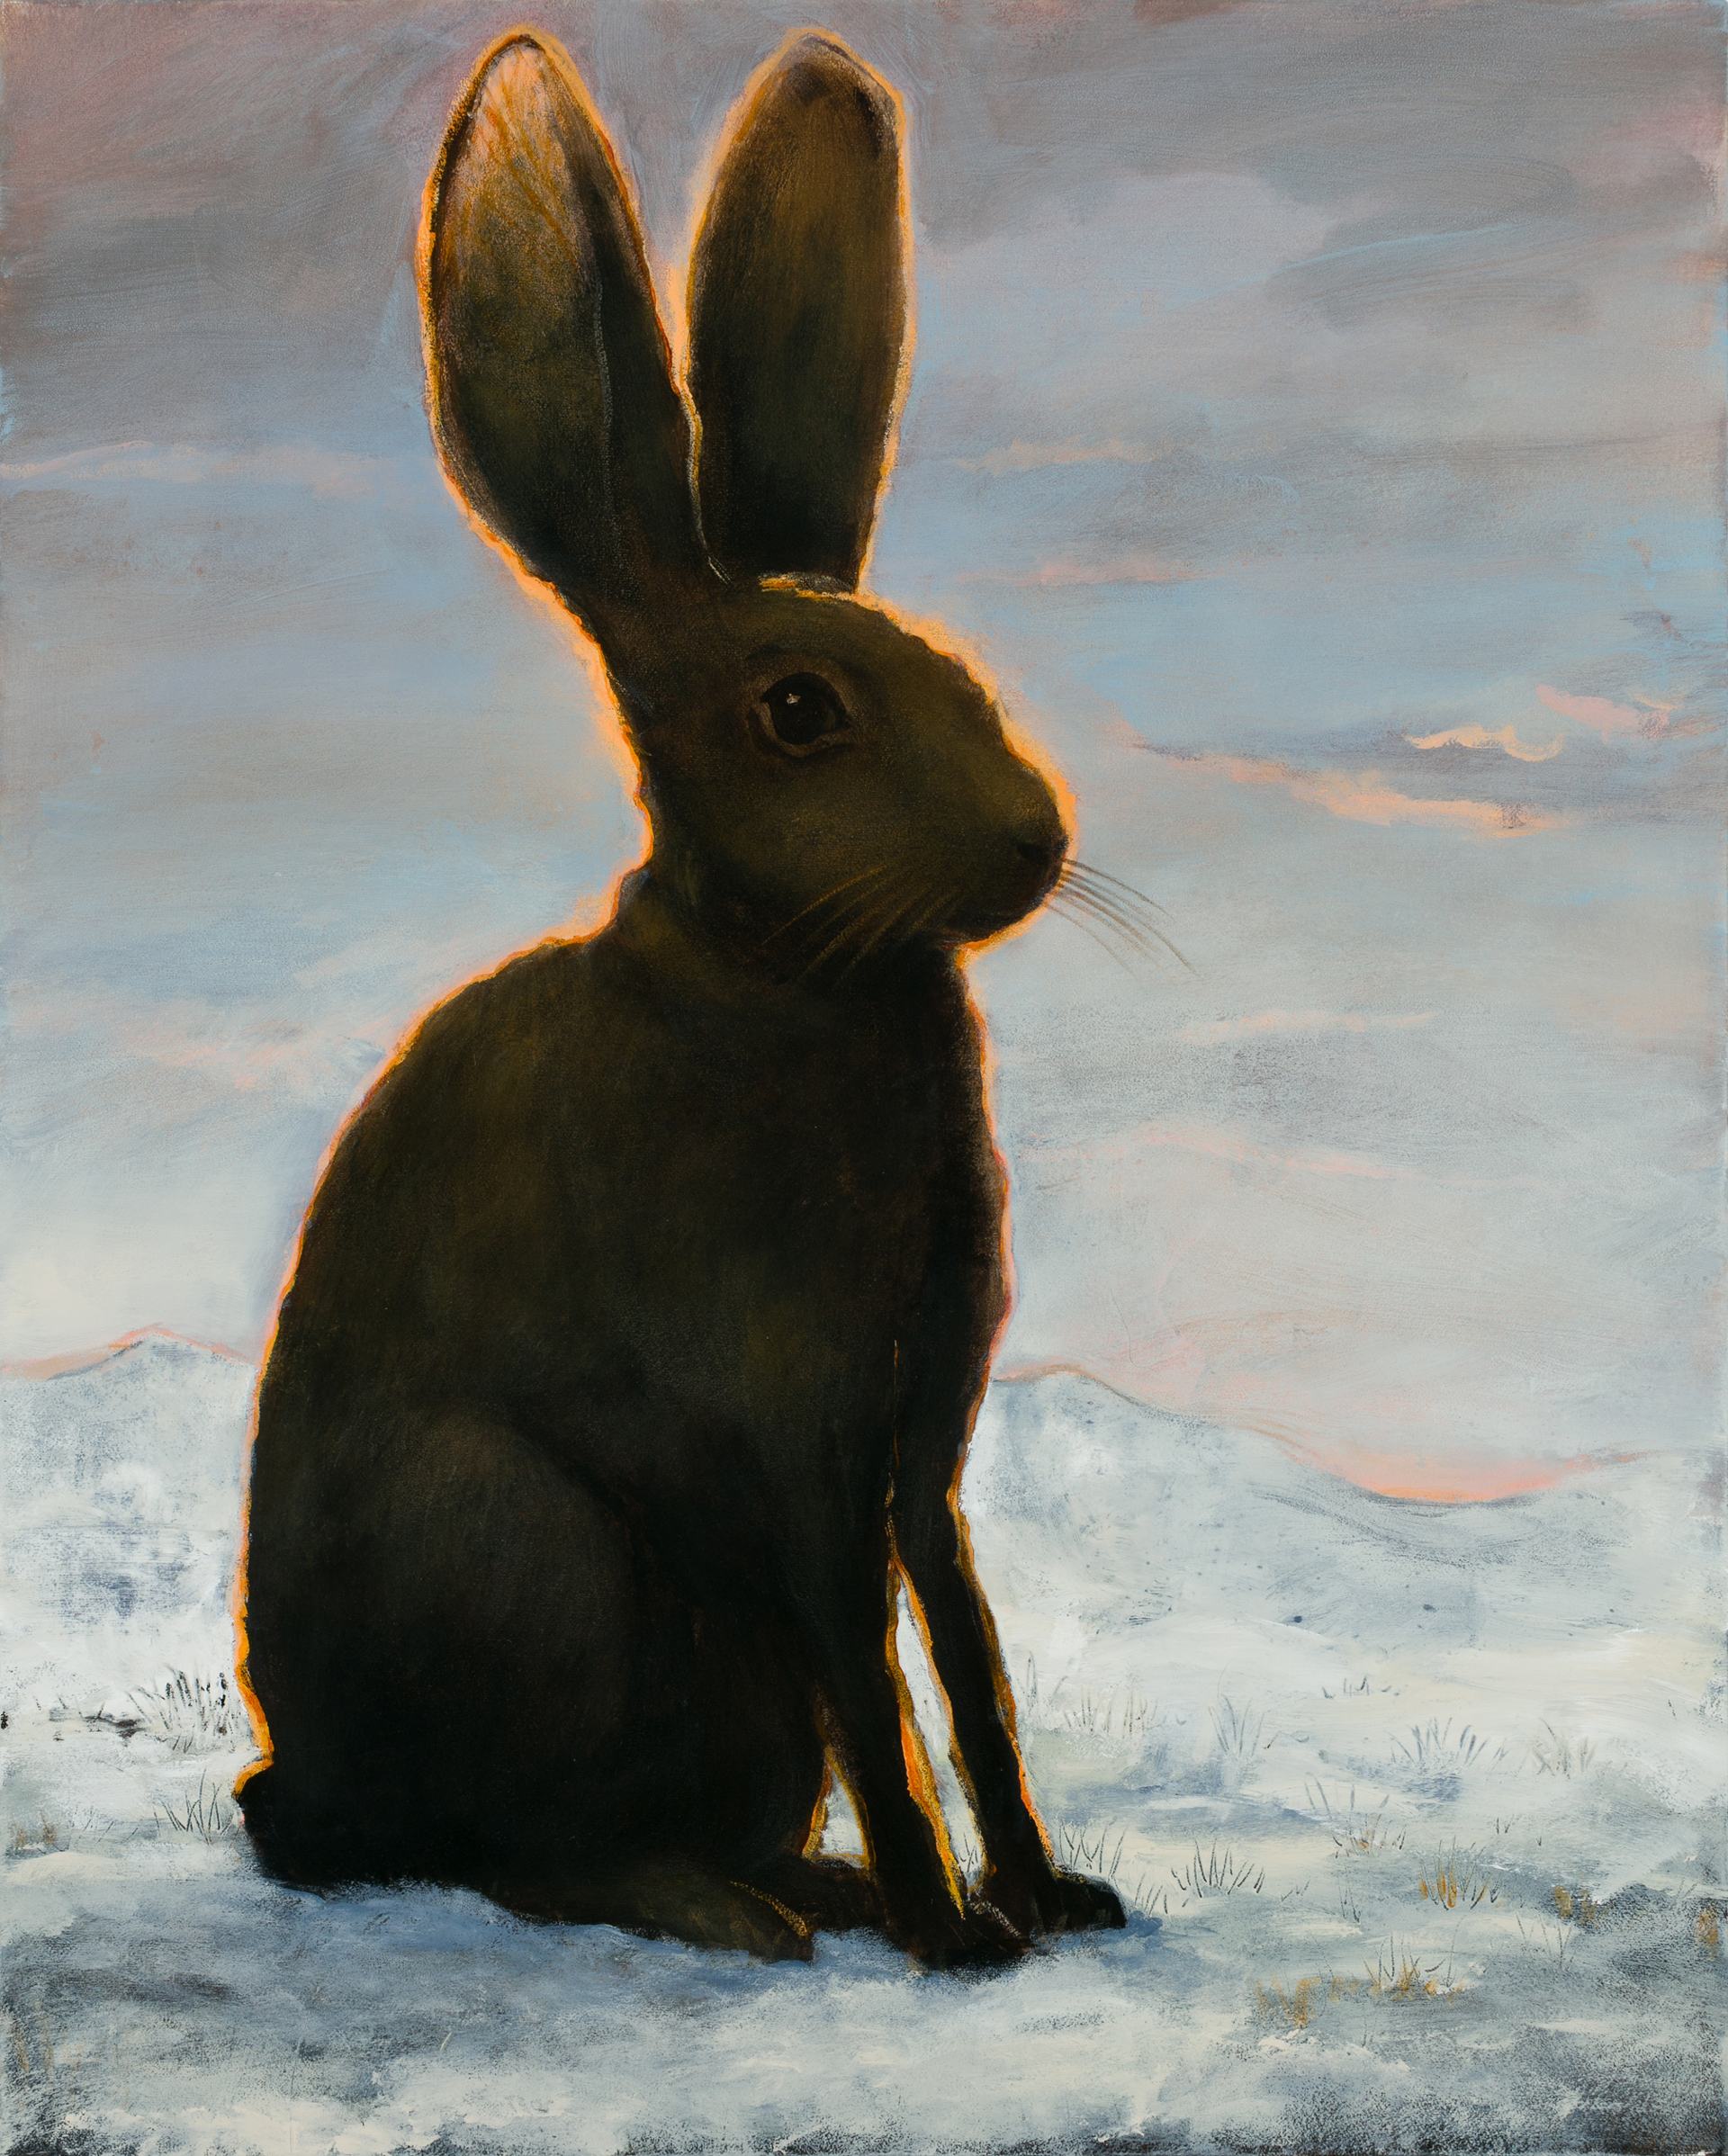 The Frozen Hare by Kevin Sloan